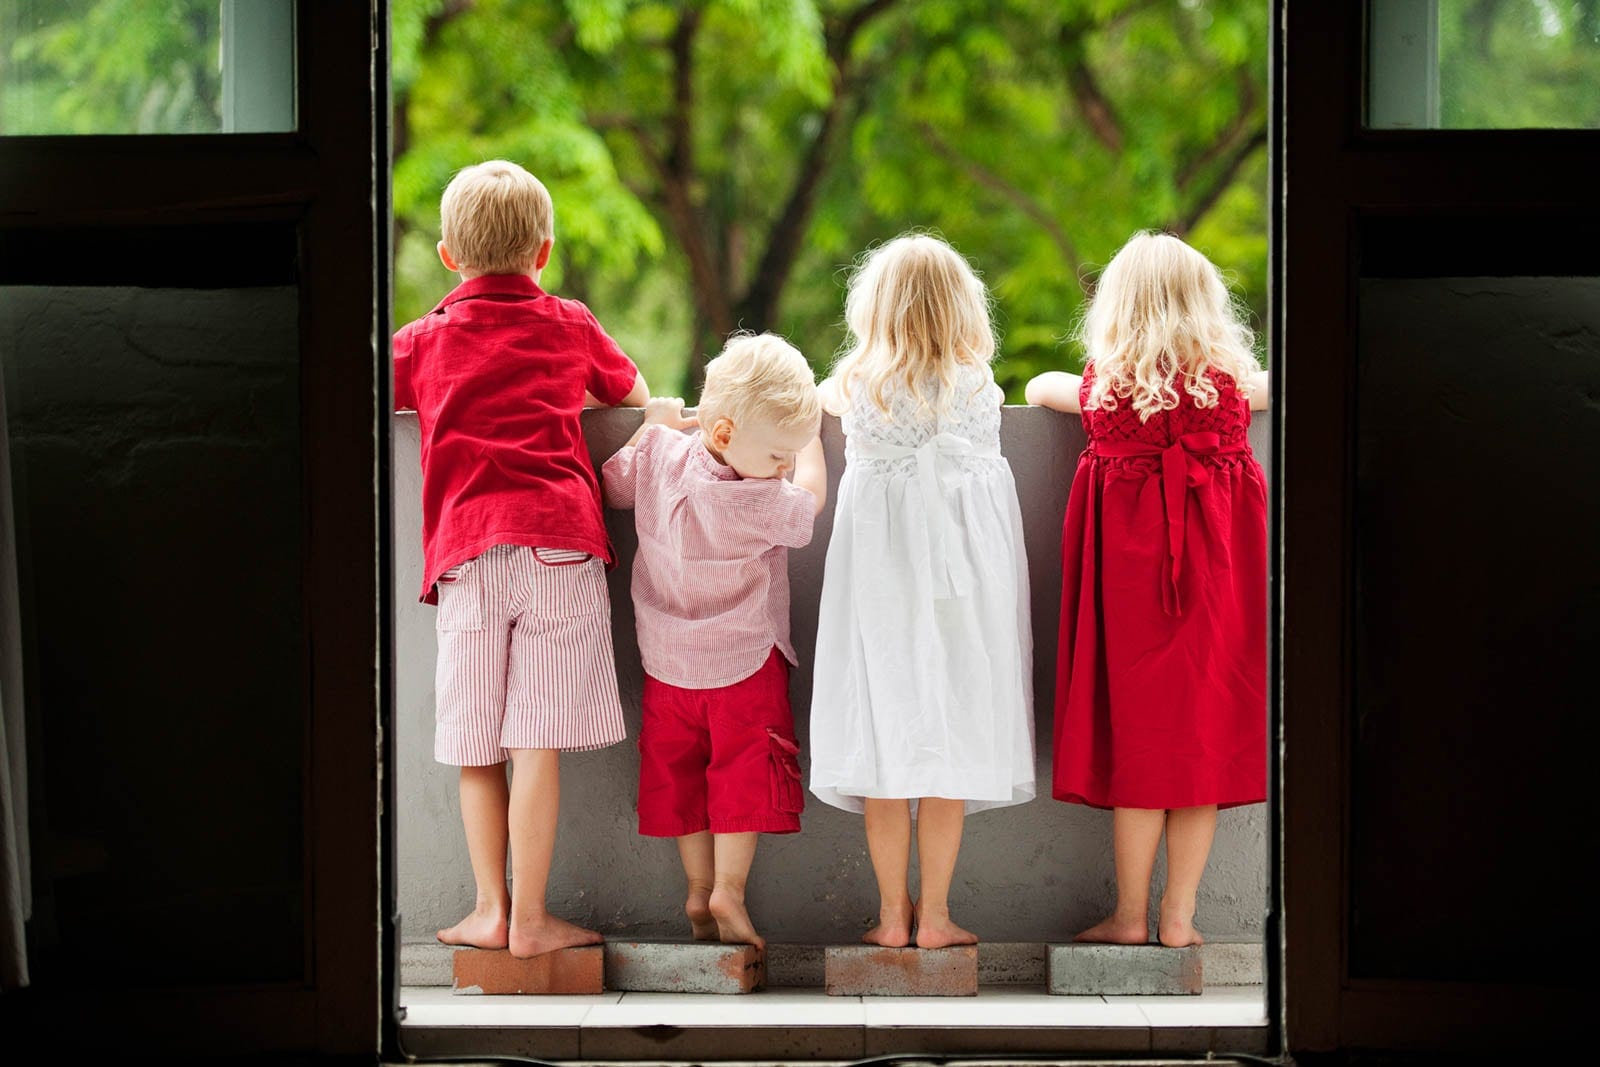 Kids Singapore Photoshoot back view of 4 children in red clothing looking out at a nature landscape